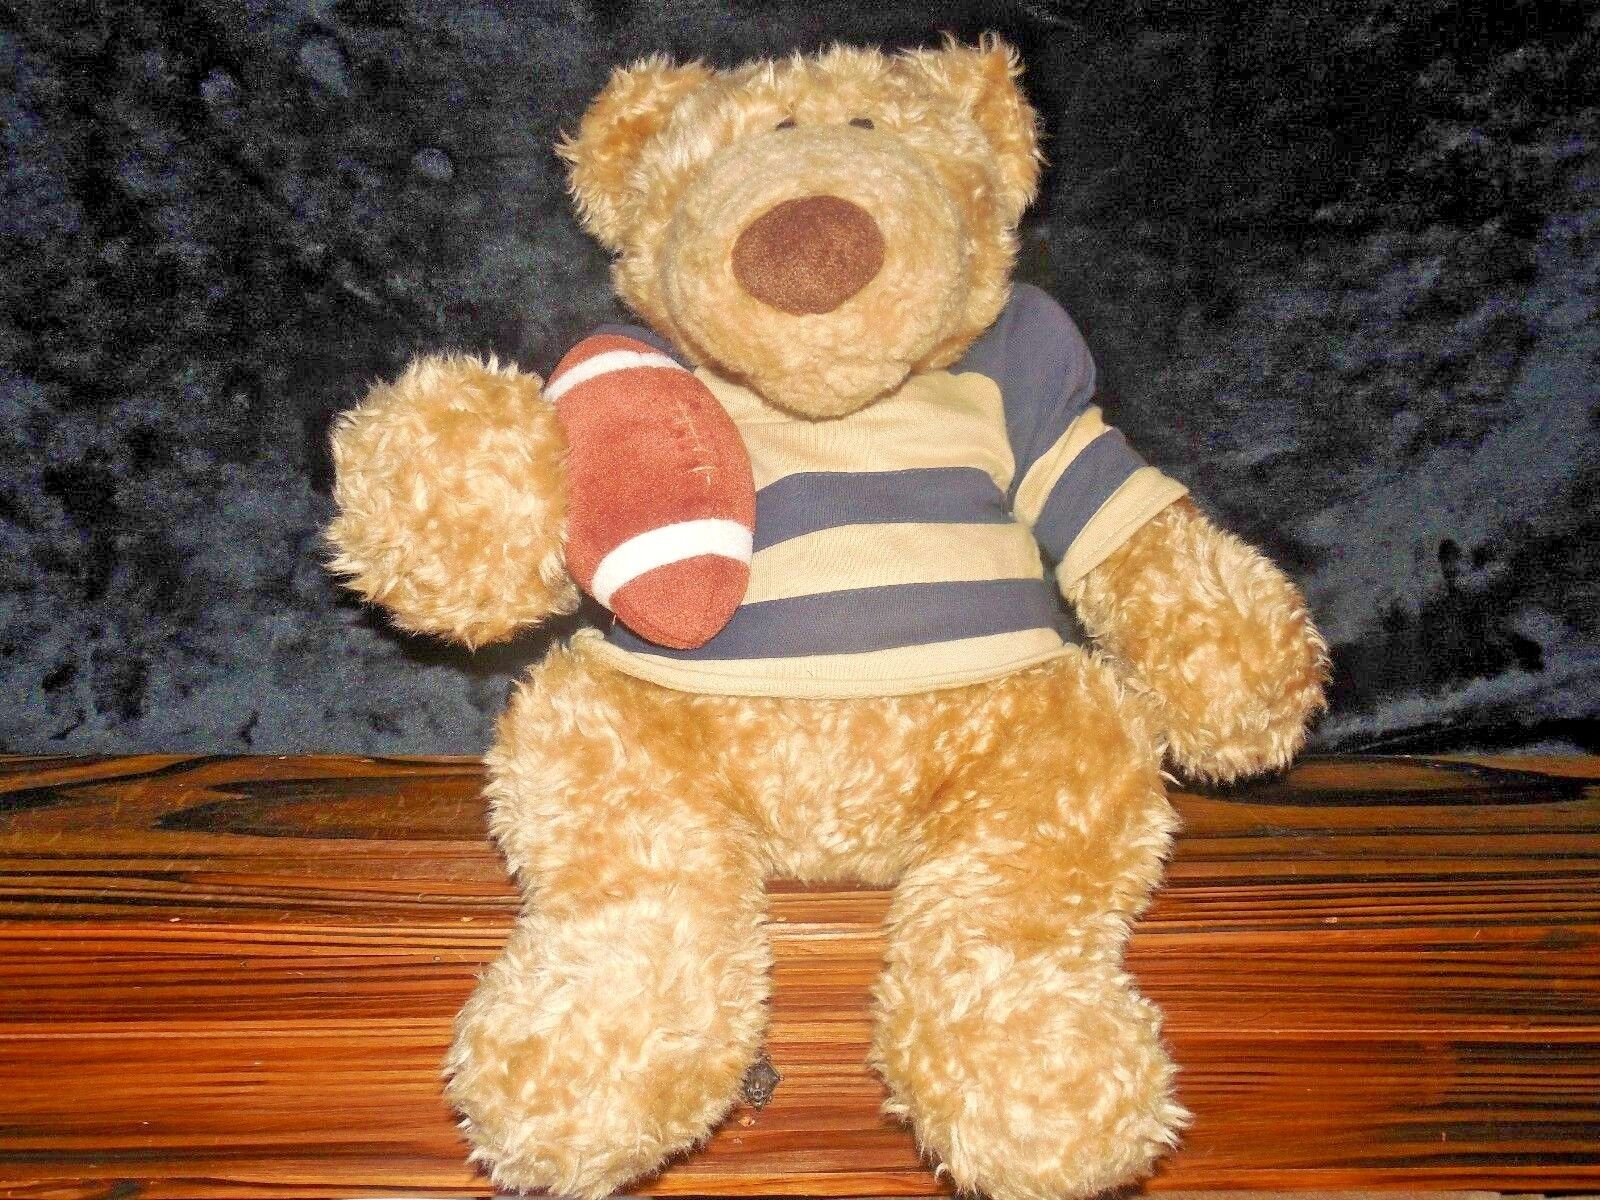 Gund Plush Pottery Barn Kids Sports Clancy 43098 Football Stuffed Teddy Bear